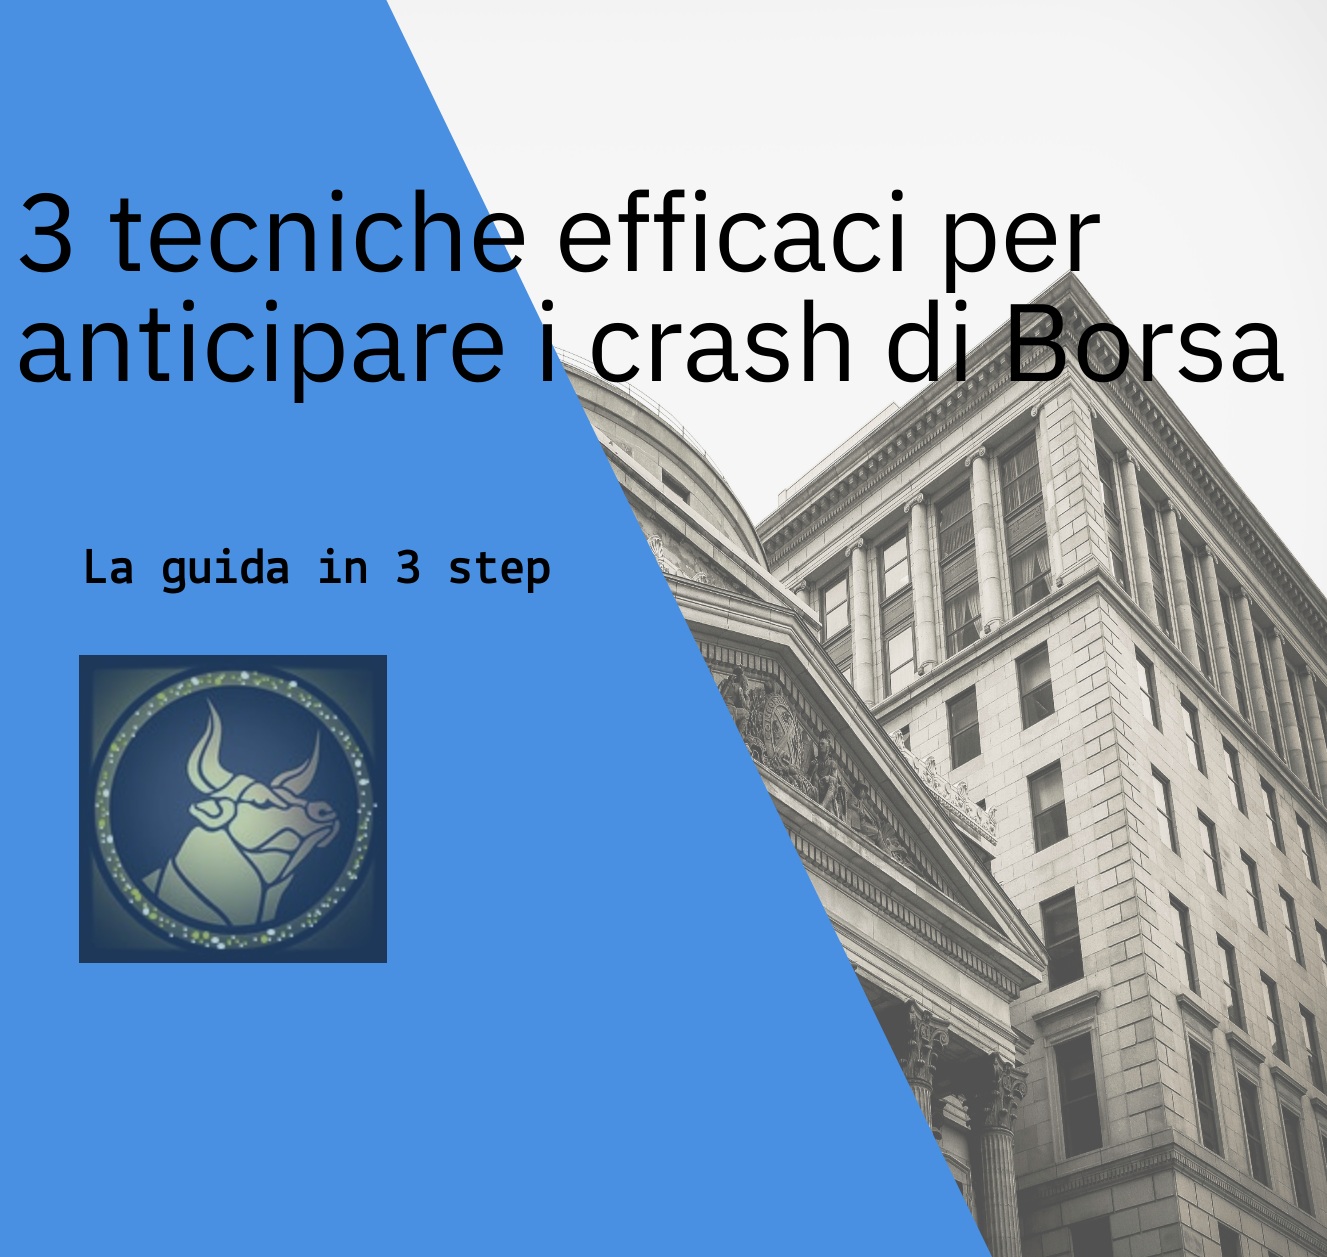 3 tecniche efficaci per anticipare i crash di Borsa